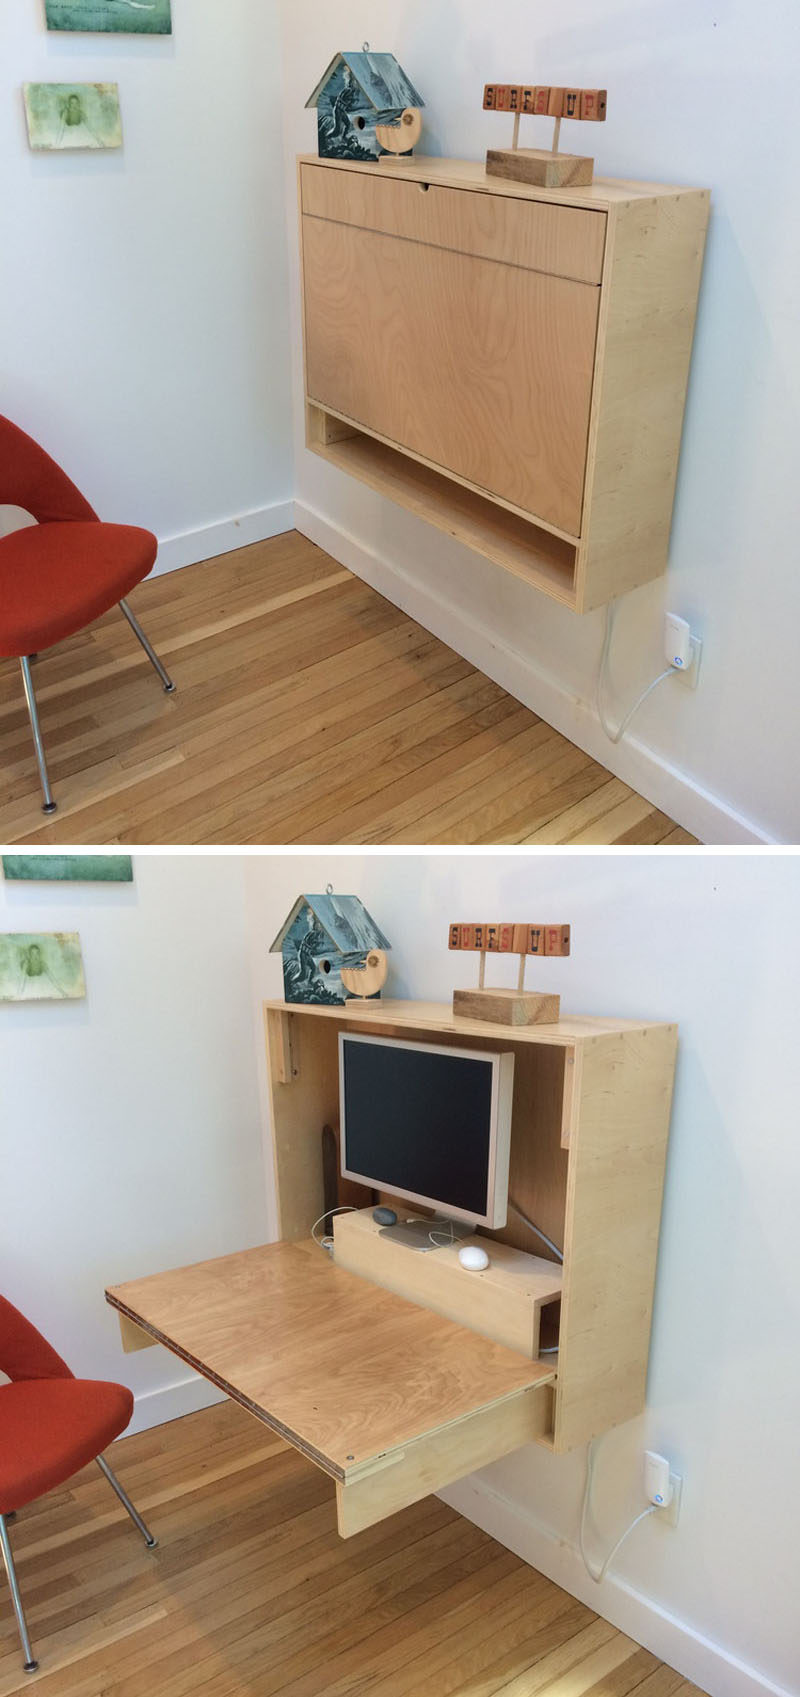 If You Re Feeling Ambitious Can Also Make Your Own Custom Fold Up Wall Desk To Sure It Fits All Of Needs